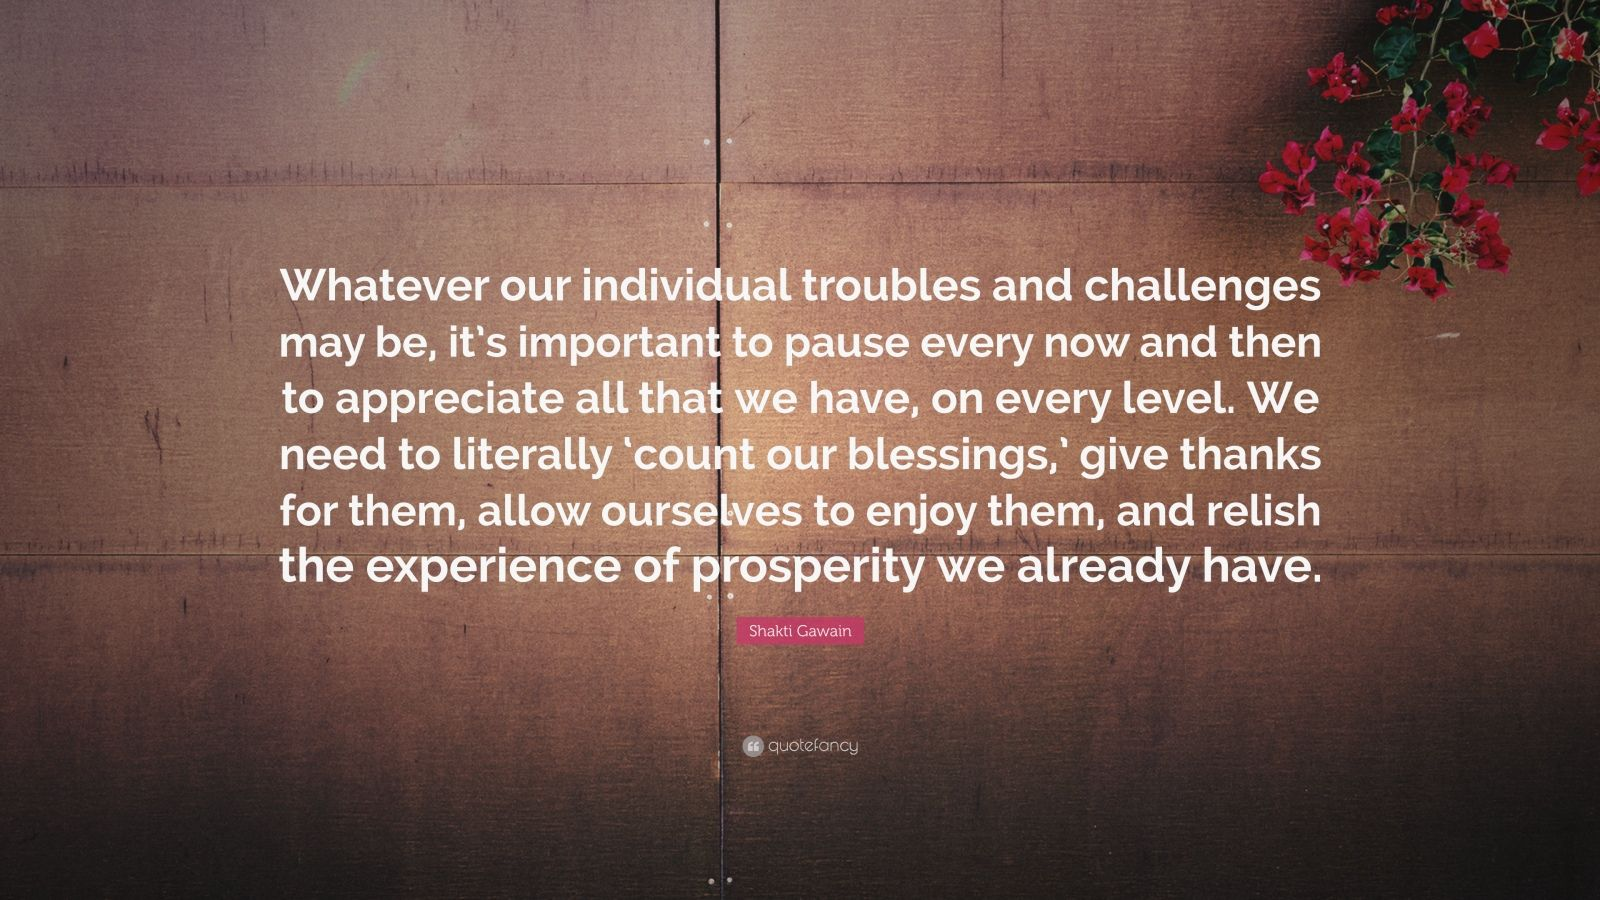 """Shakti Gawain Quote: """"Whatever our individual troubles and challenges may be, it's important to pause every now and then to appreciate all that we have, on every level. We need to literally 'count our blessings,' give thanks for them, allow ourselves to enjoy them, and relish the experience of prosperity we already have."""""""